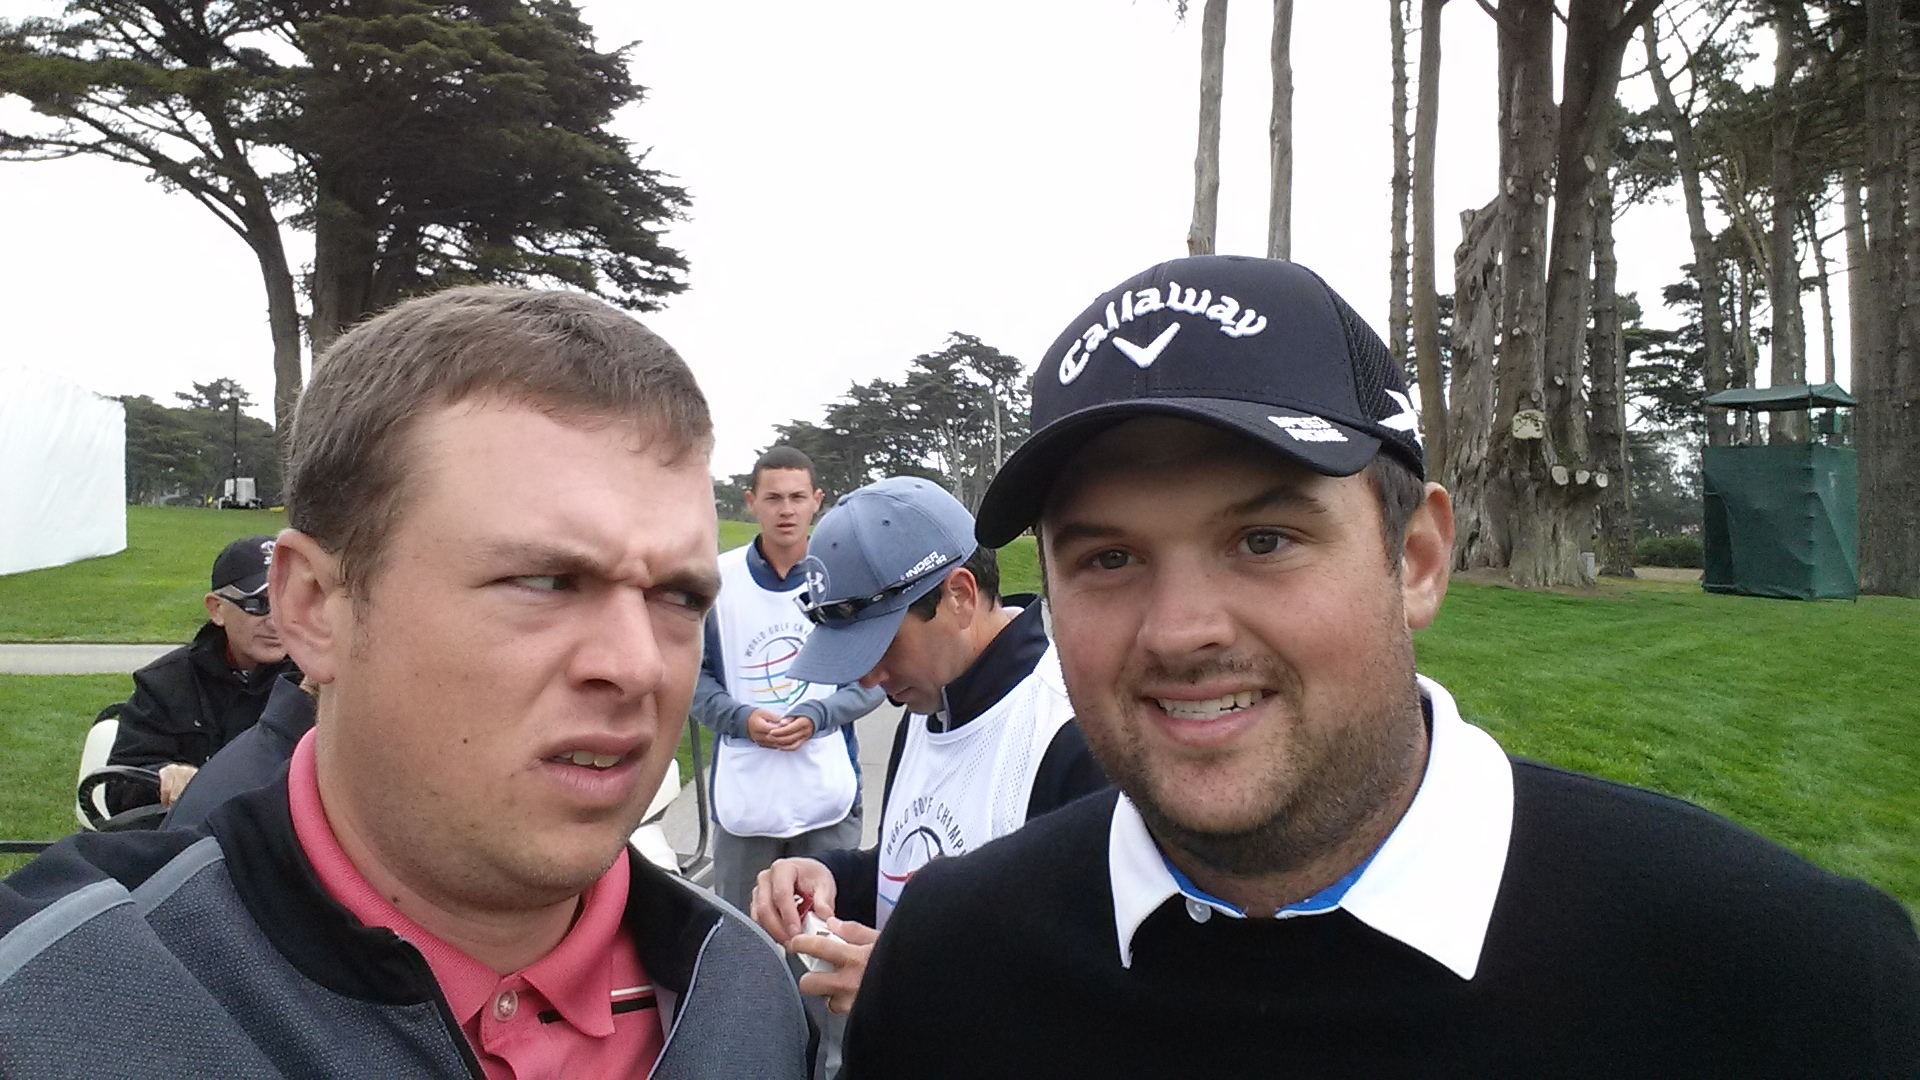 This fan does NOT like Patrick Reed.